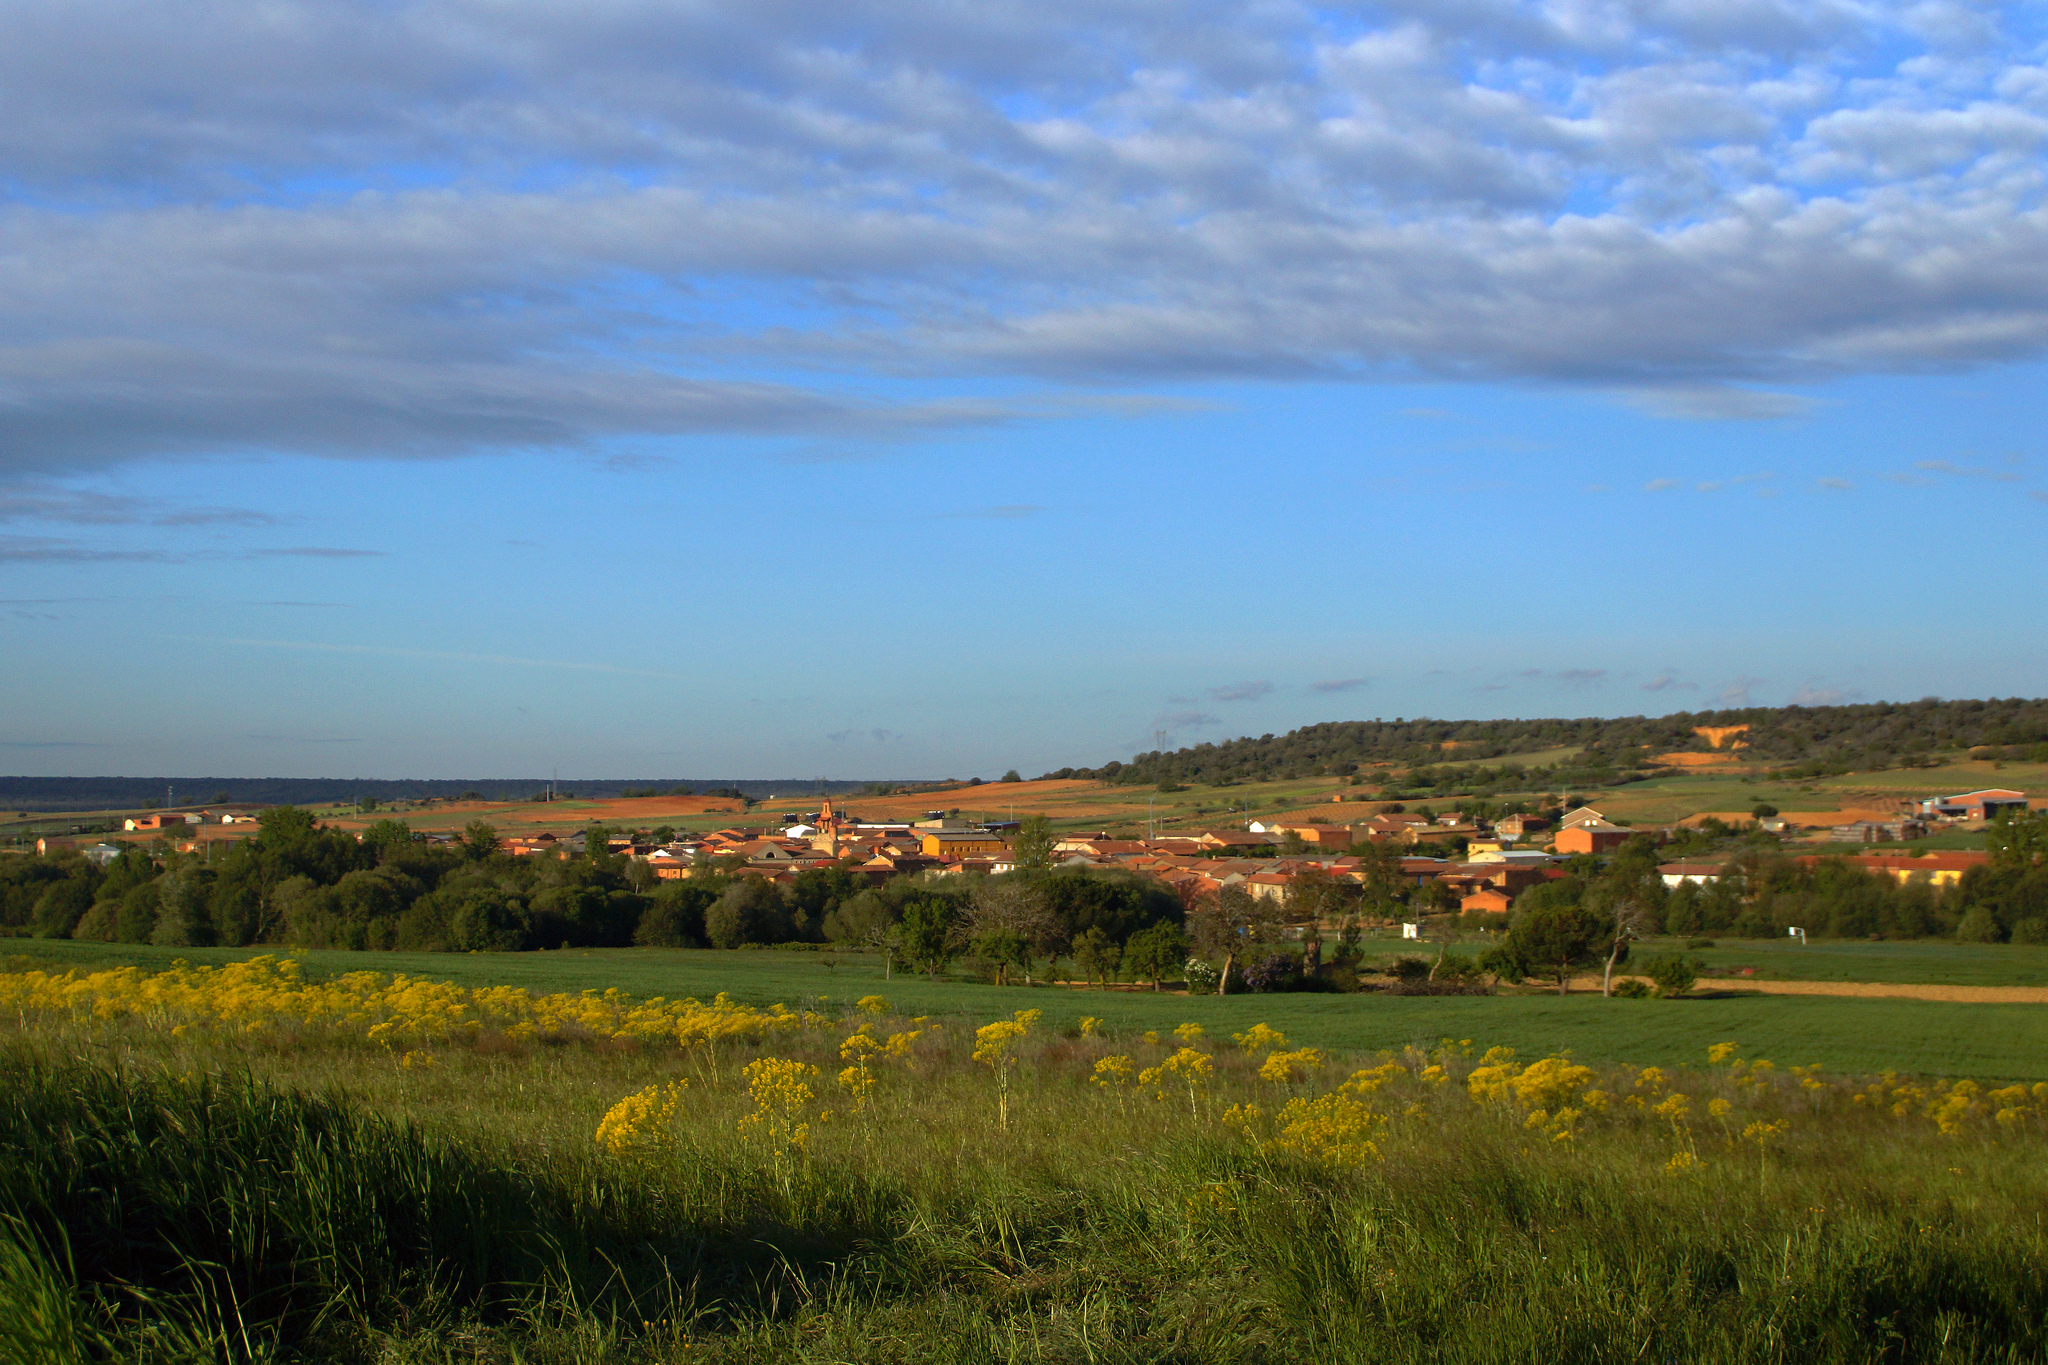 Santibáñez de Valdeiglesias, surrounded by green fields